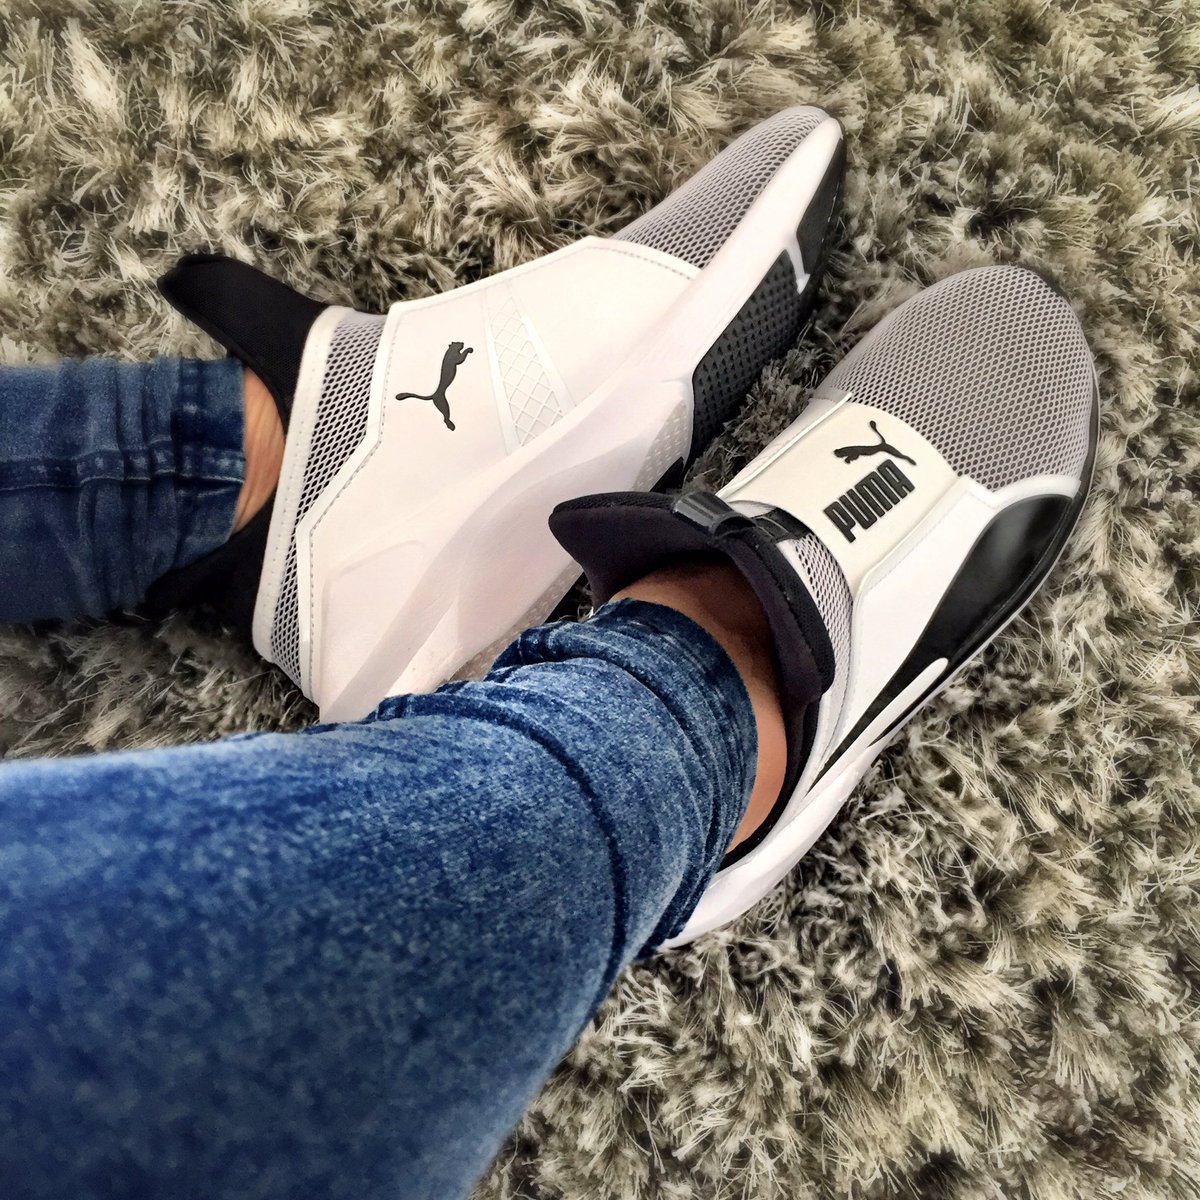 291ad4e1b44  PUMA Fierce by  KylieJenner - are Beyond hot!! In  PUMASouthAfrica stores  today  kyliejenner  ForeverFiercepic.twitter.com Vy9glAvowA